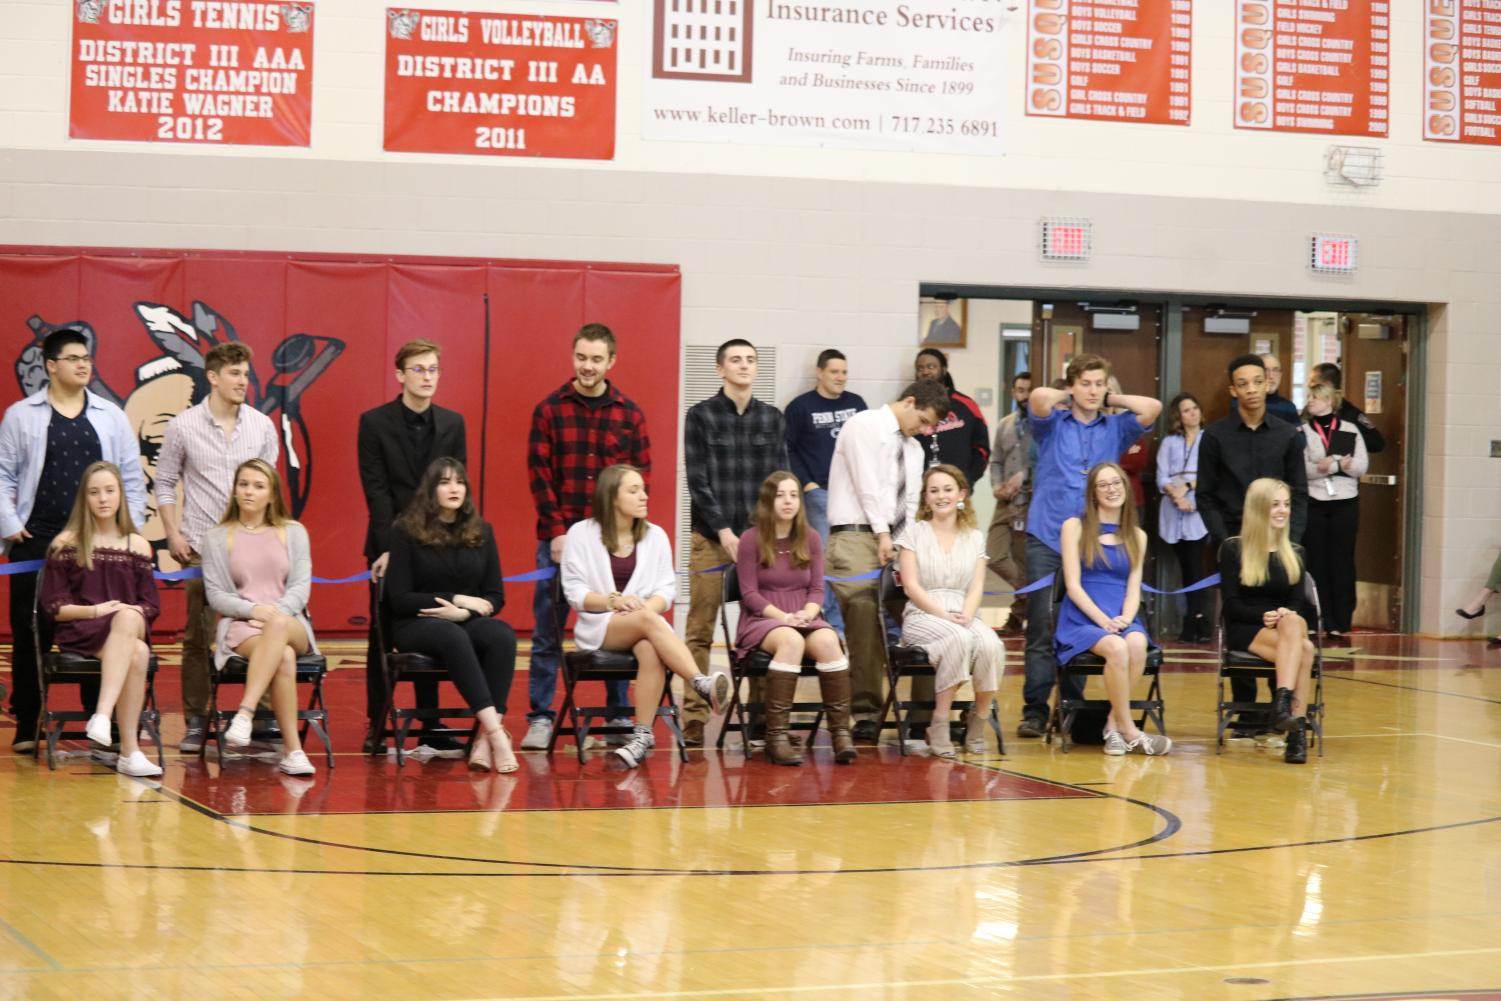 Candidates are introduced to the student body. From top row left to right, bottom row left to right: senior Trevor Leuba, junior Connor Kernan, junior Nolan Holloway, junior Brock Hofler, senior Christian Collins, senior Michael Boampong, senior Mia Kobylski, senior Ali Krahl, junior Emma Robert, junior Holly Mullaney, senior Megan Watkins, and junior Katie Mauldin. Photo by Alex Martuszewski.